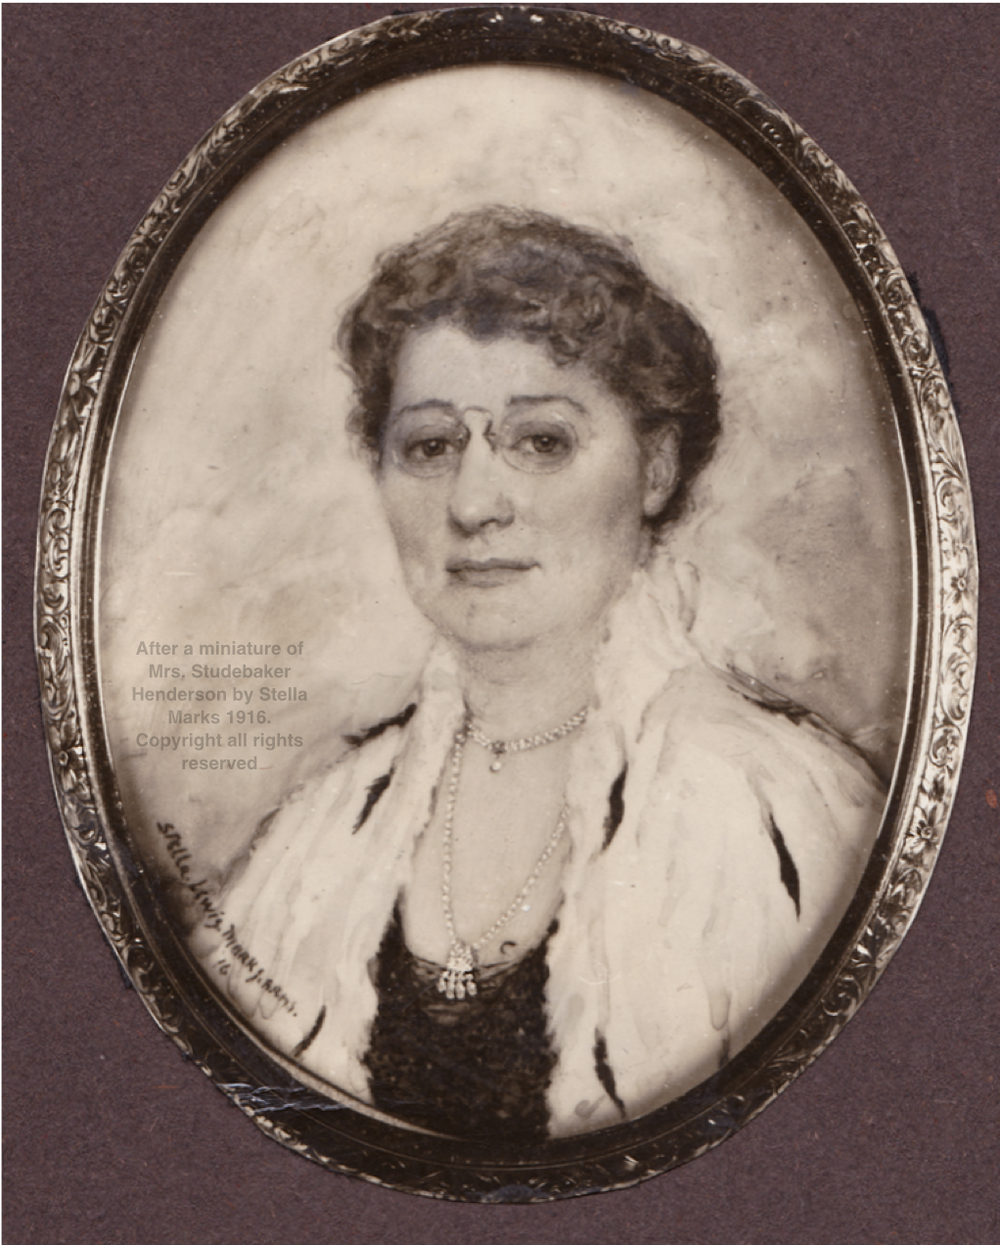 After a miniature of Mrs. Studebaker Henderson by Stella Marks 1916. Copyright Stella Marks' Estate all rights reserved